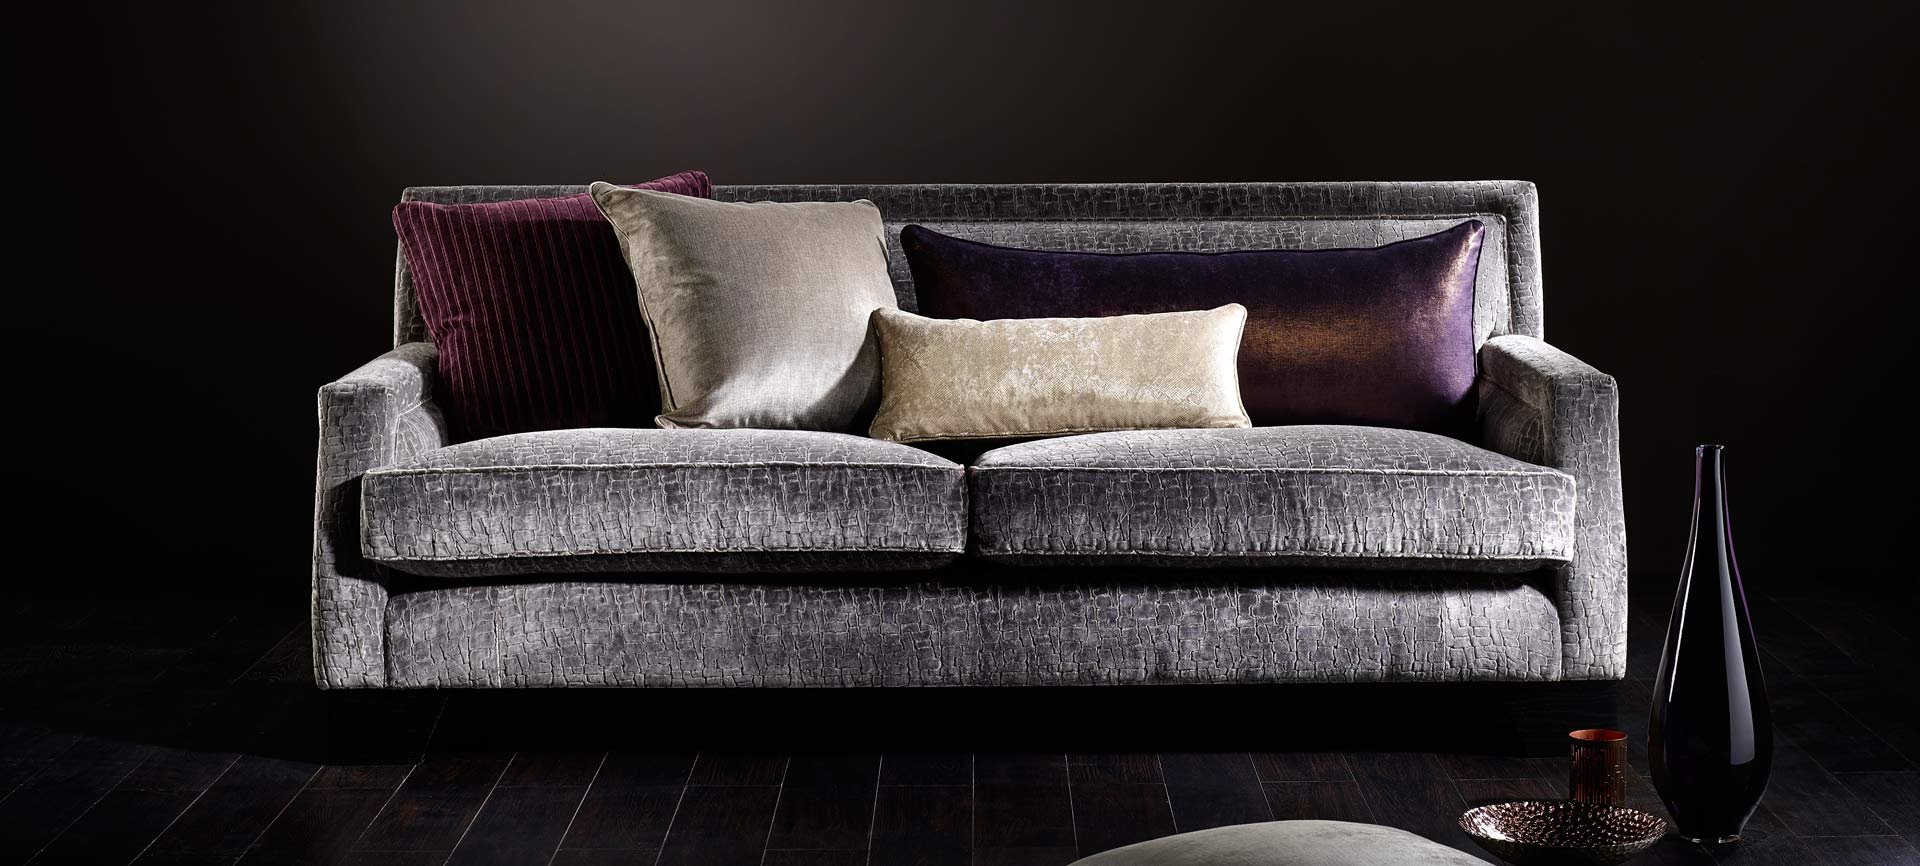 Andre Upholstery - upholstered sofa with cushions